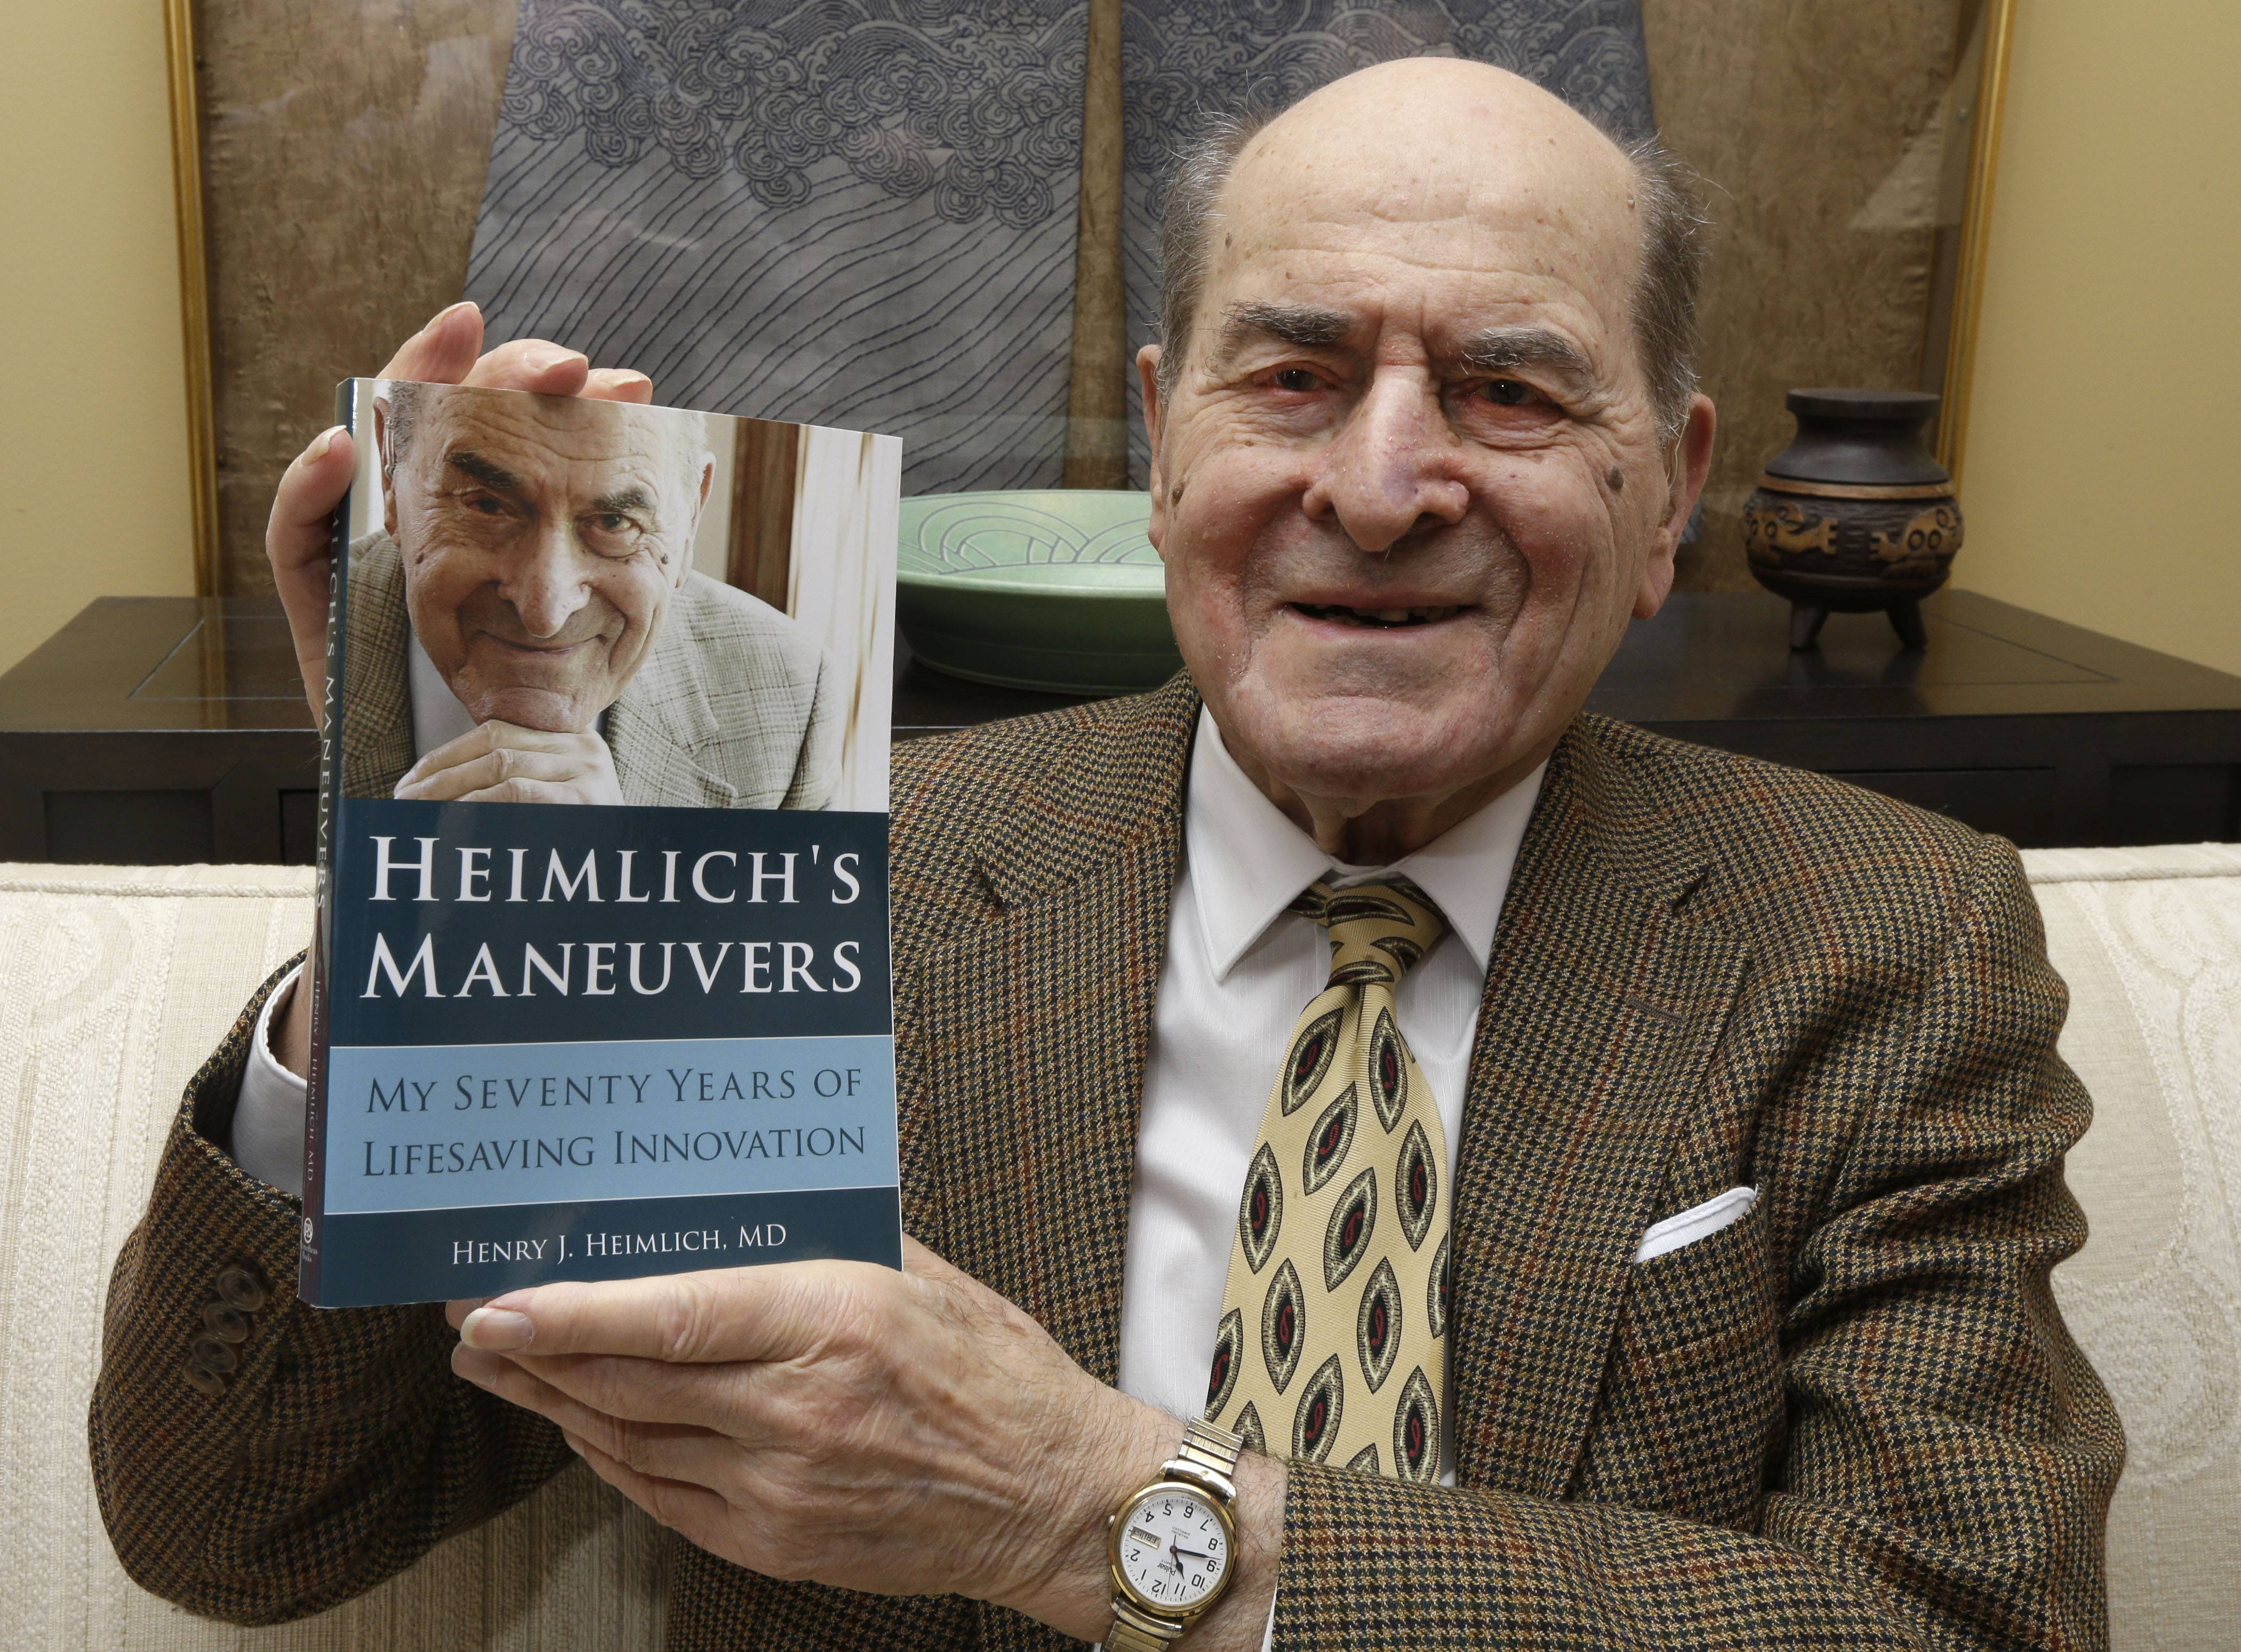 Dr. Henry Heimlich, who is known for developing the Heimlich maneuver that has been used to clear obstructions from the windpipes of choking victims around the world for four decades, has just released his memoir.